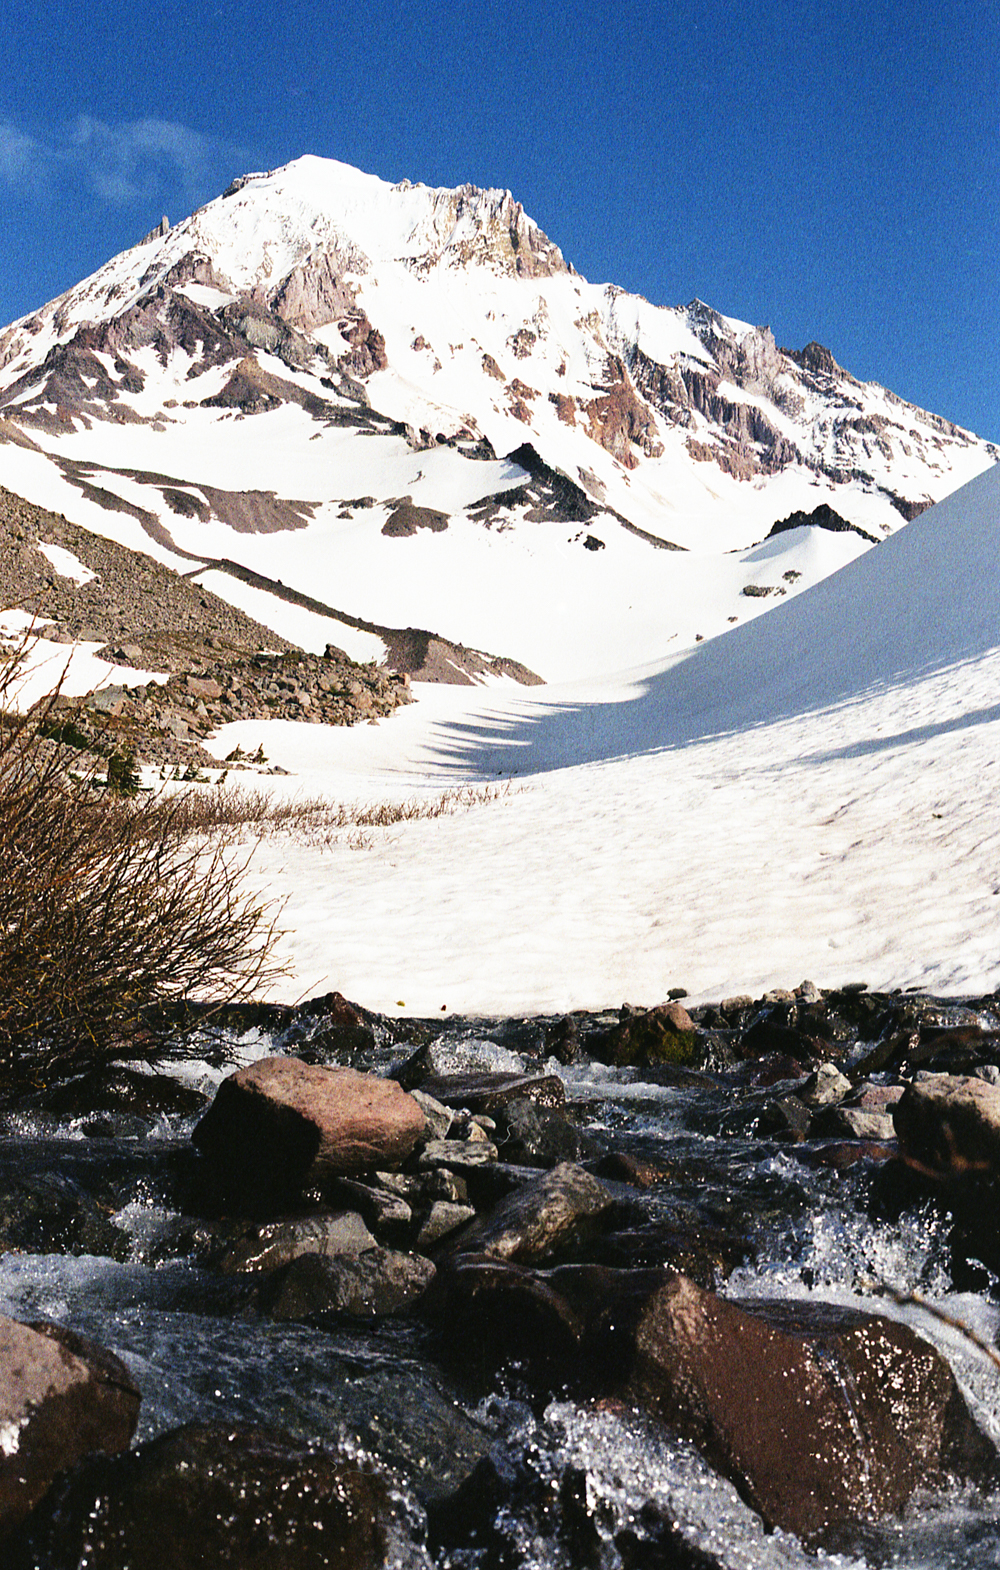 01-36 Glacial stream below Gilsan glacier on Mt Hood.jpg